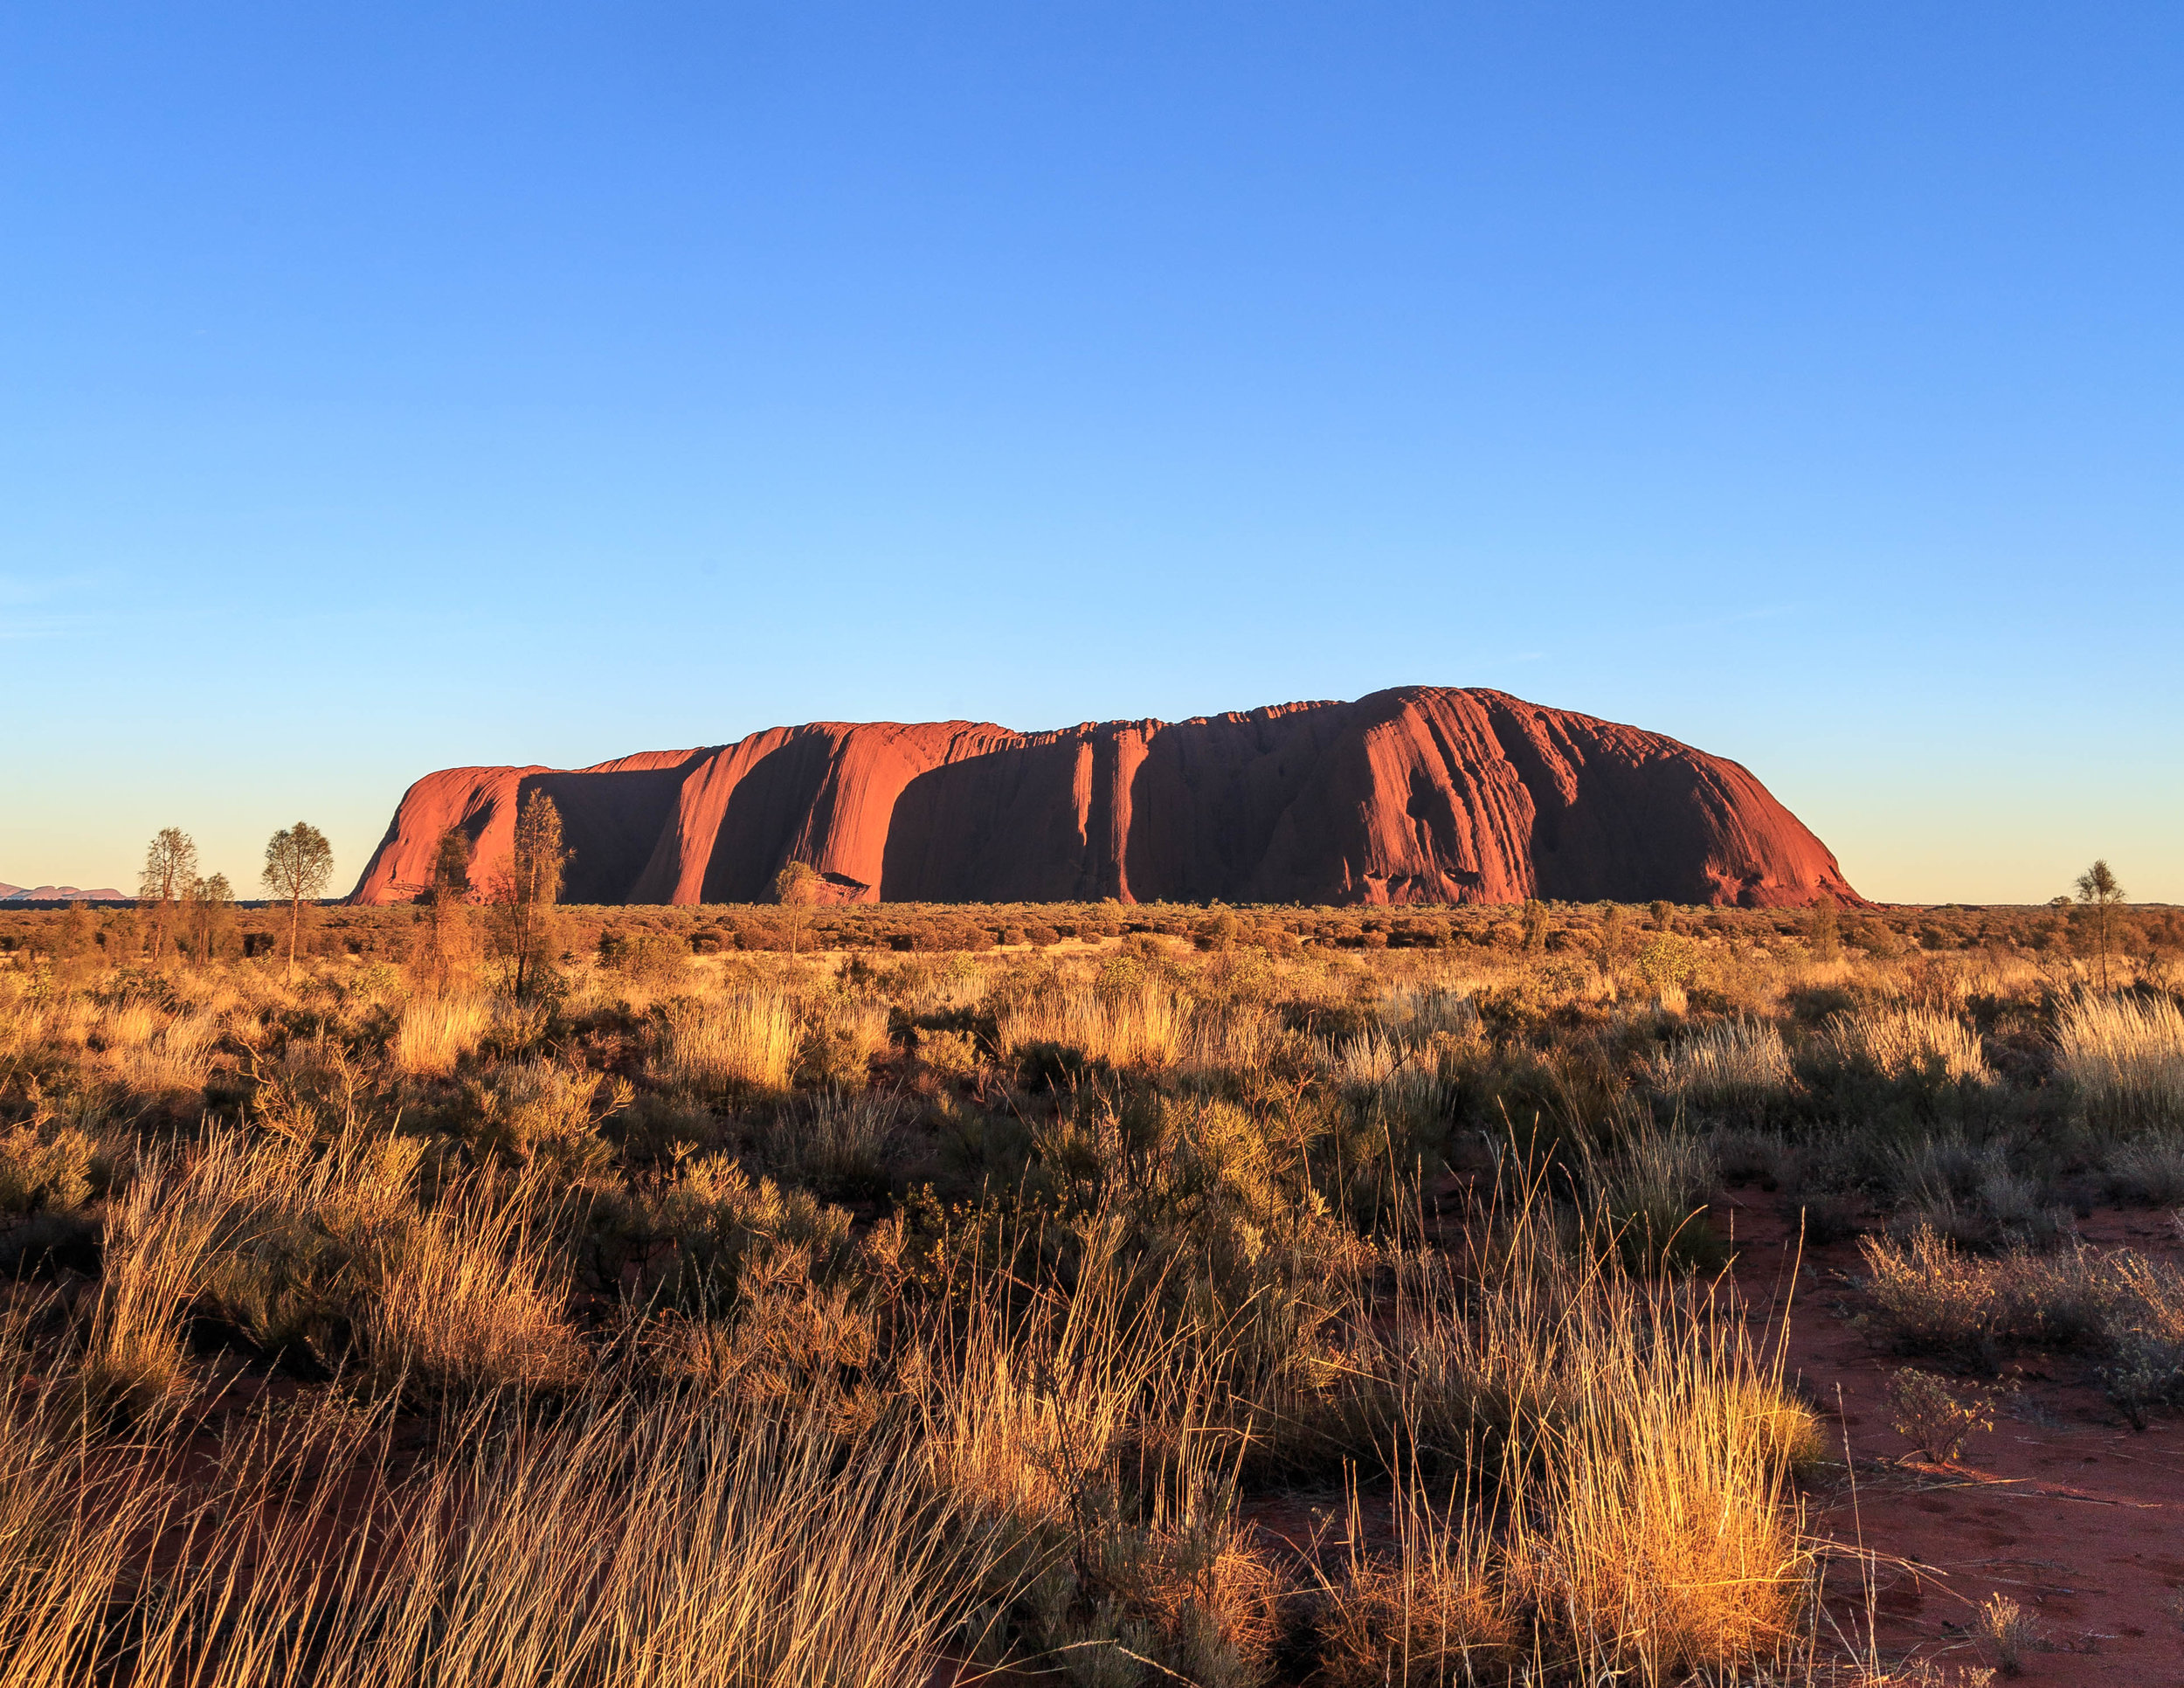 Instagrammable spots in the Outback: Sunrise view at Uluru